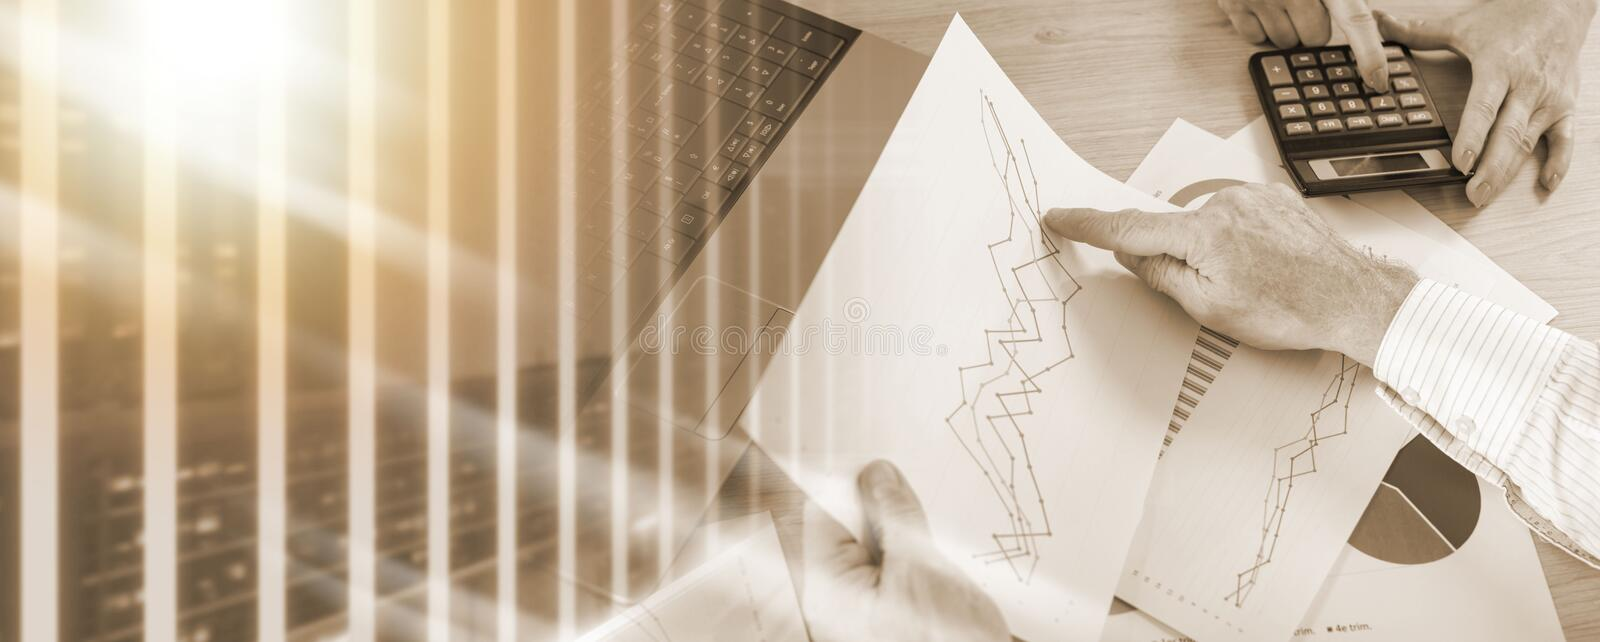 Discussing business graphs; multiple exposure royalty free stock image